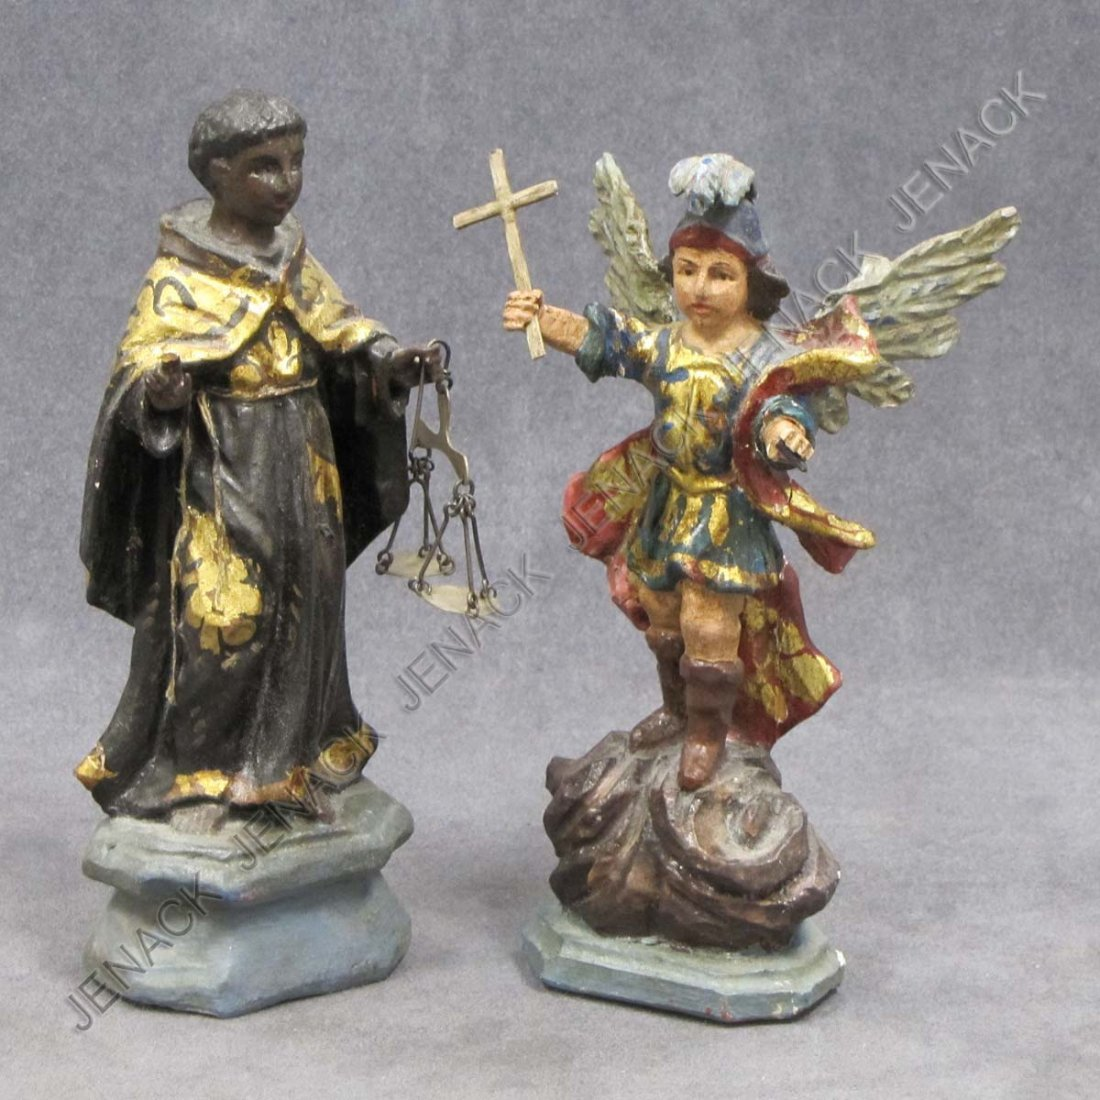 22: LOT (2) SPANISH COLONIAL CARVED AND PAINTED SANTOS